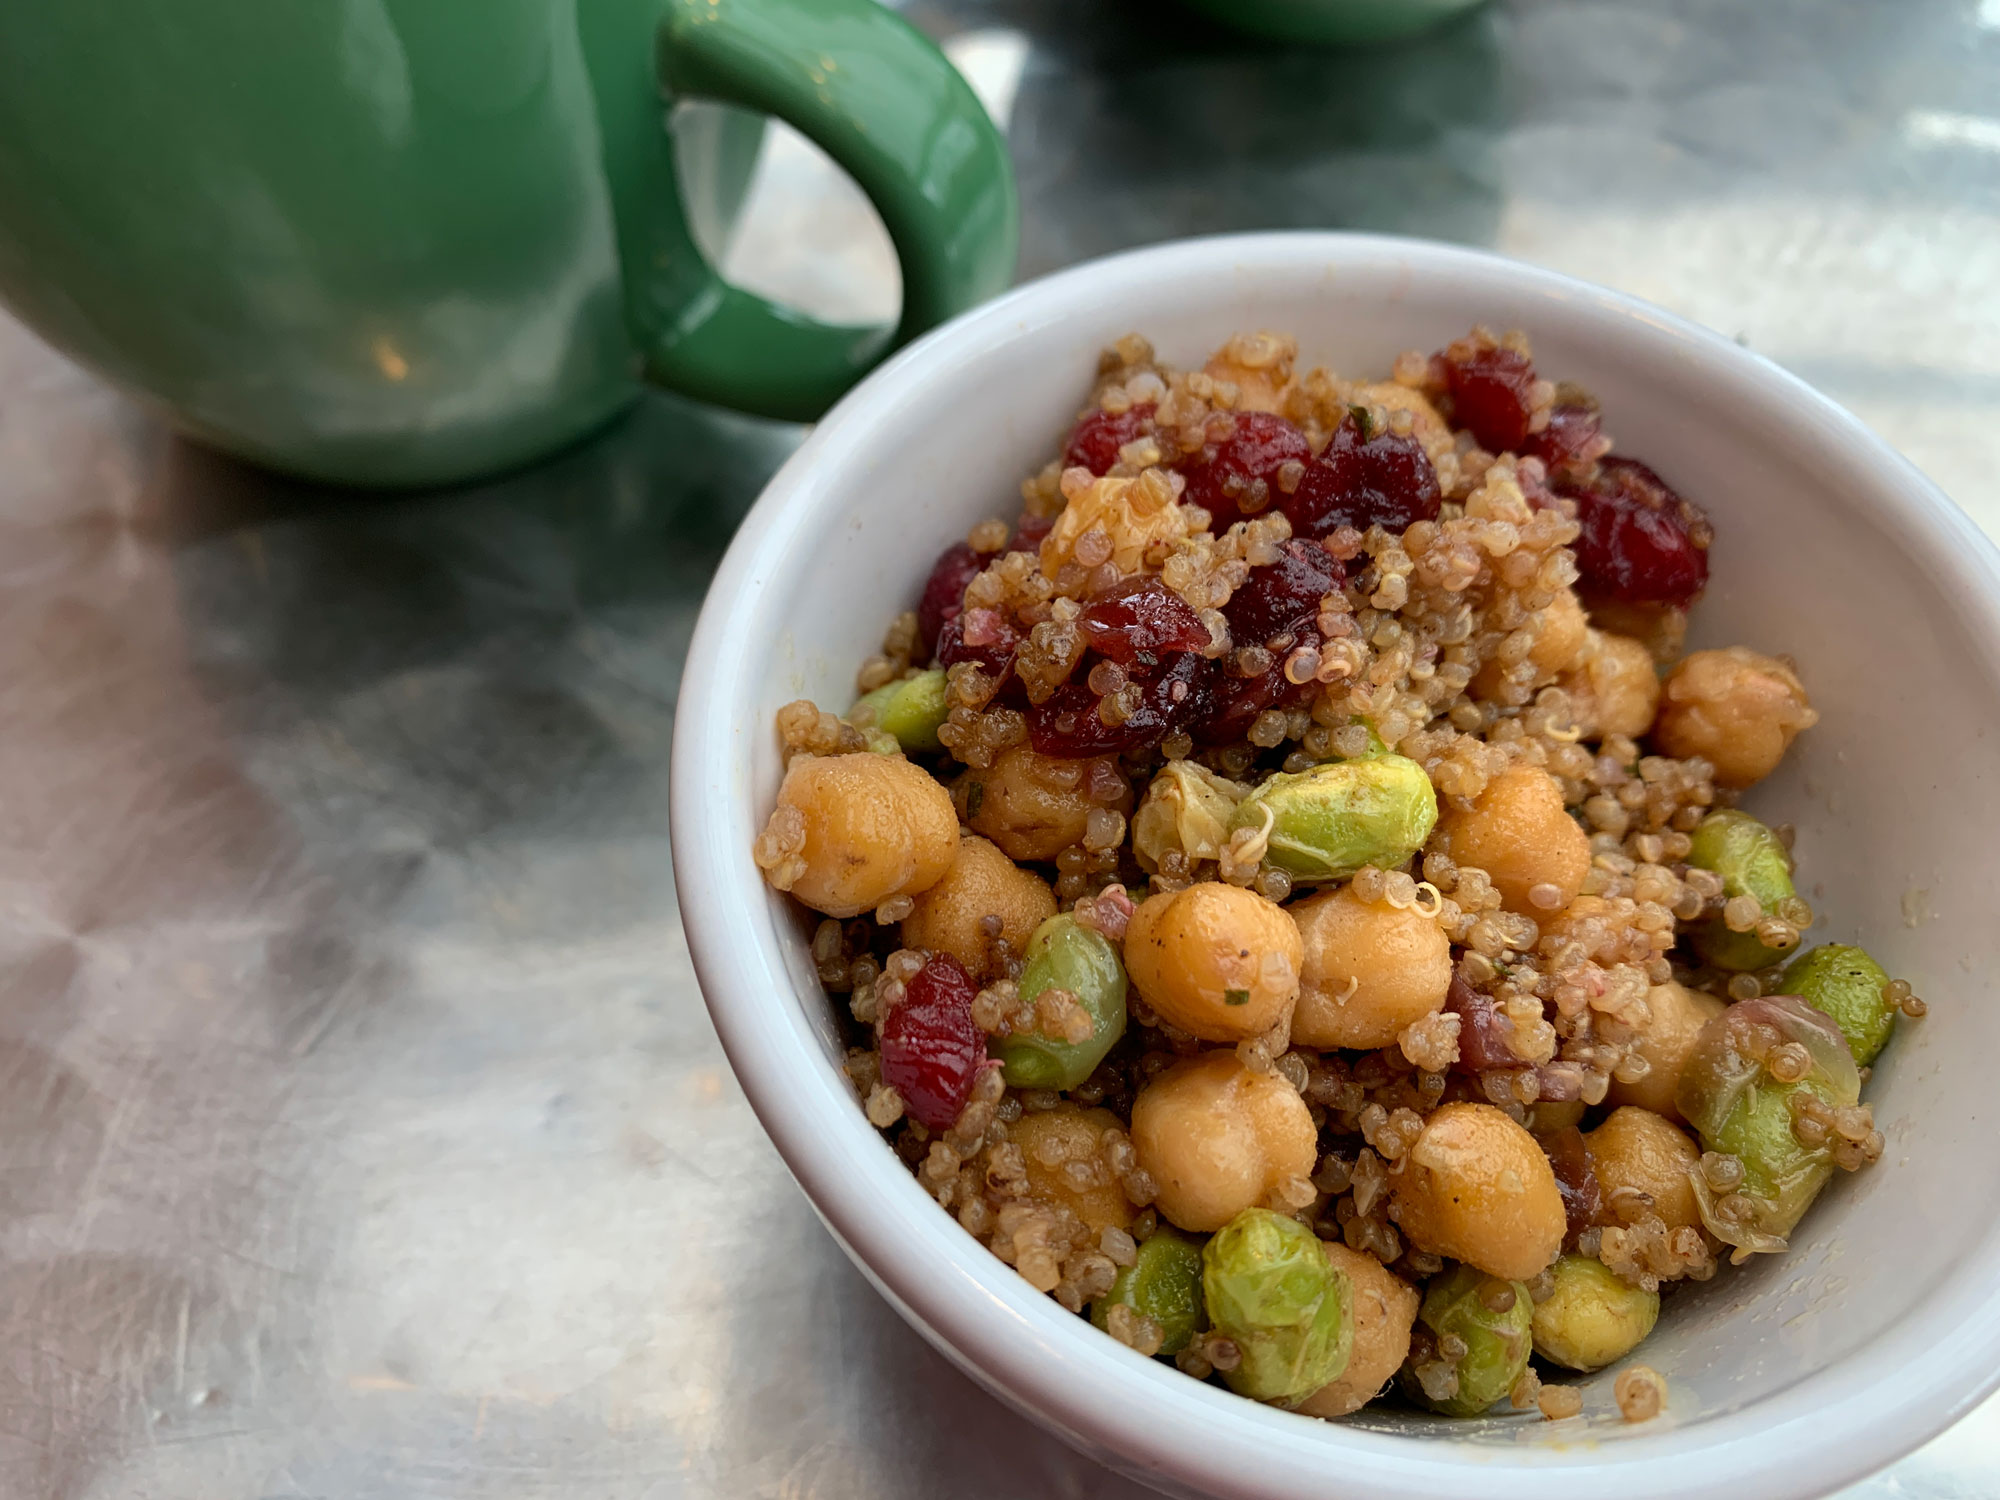 A bowl of edamame, quinoa, chickpeas and cranberry from the Greenhouse Cafe